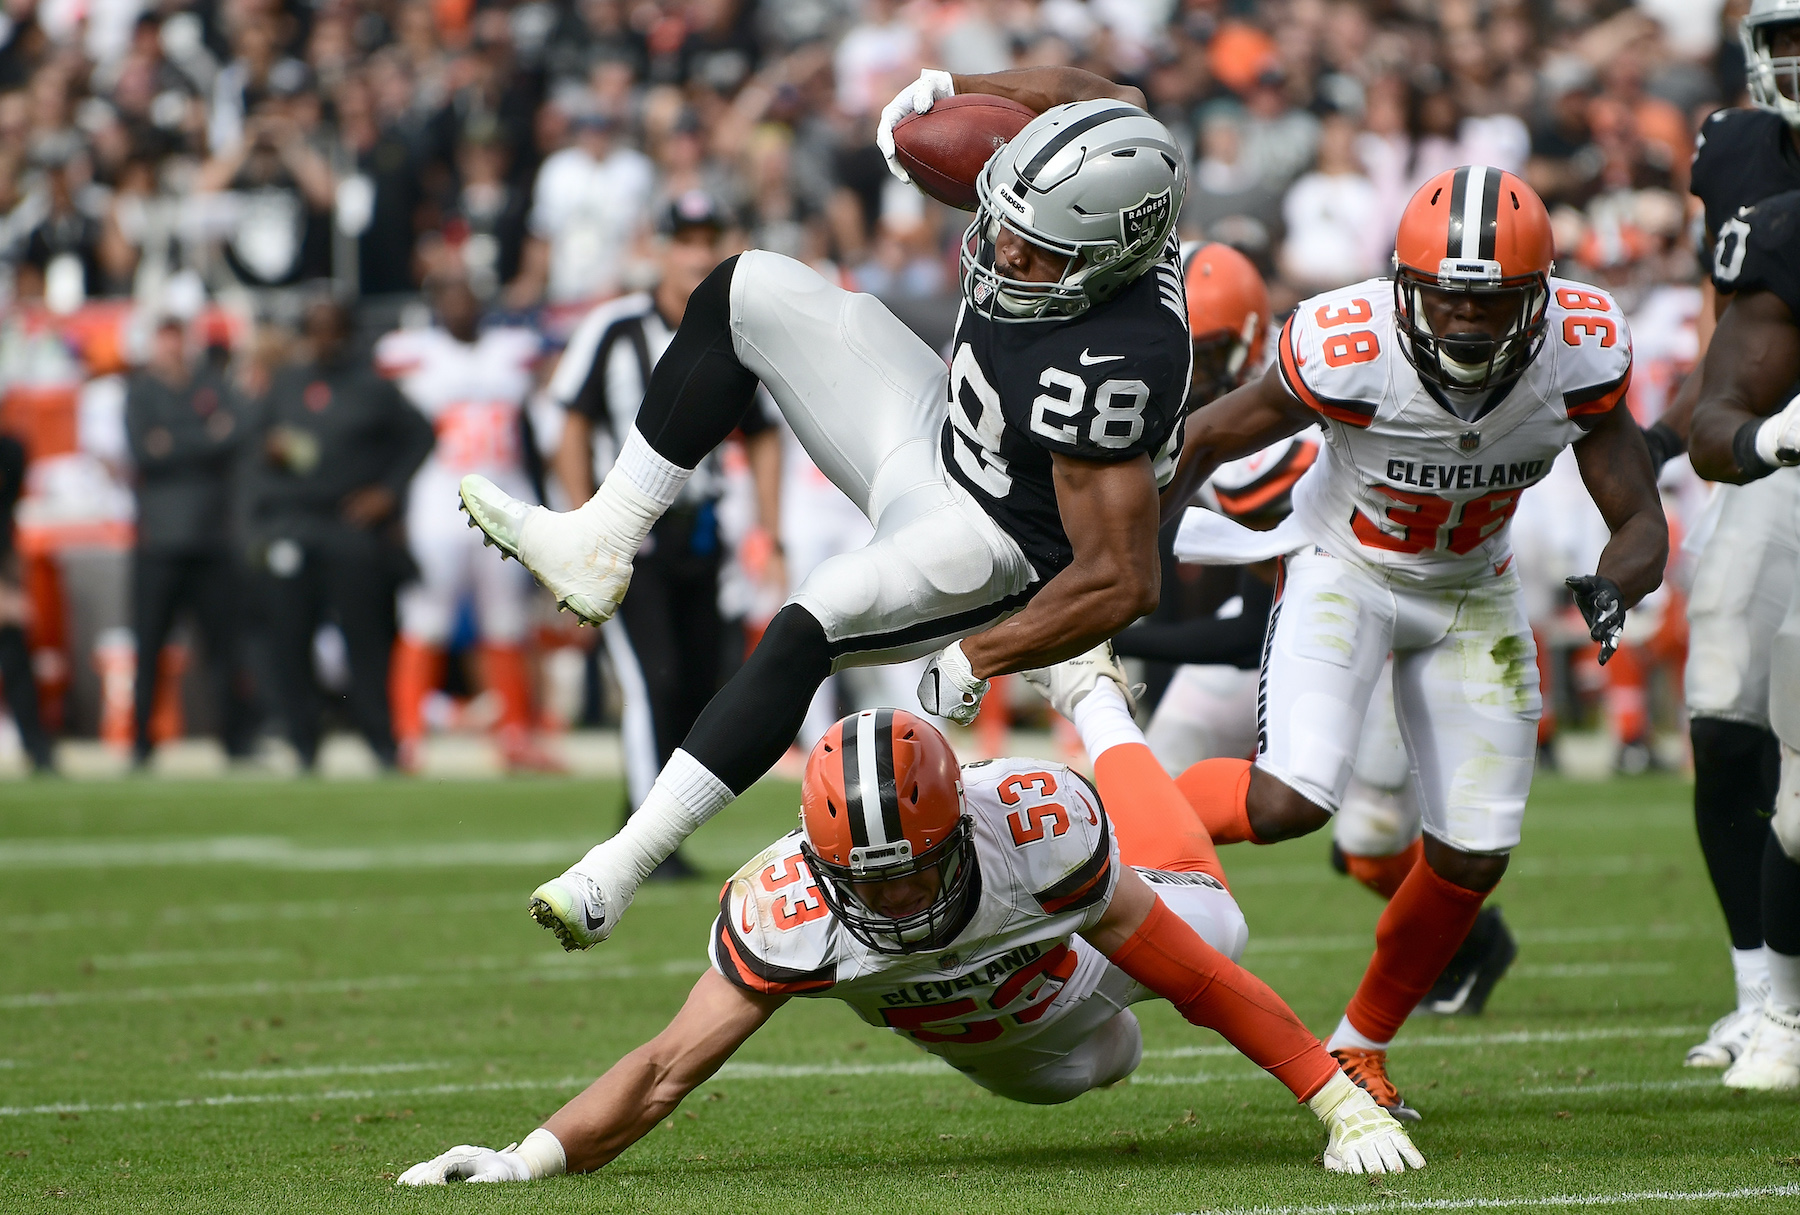 Doug Martin of the Oakland Raiders gets tackled by Joe Schobert of the Cleveland Browns in 2018